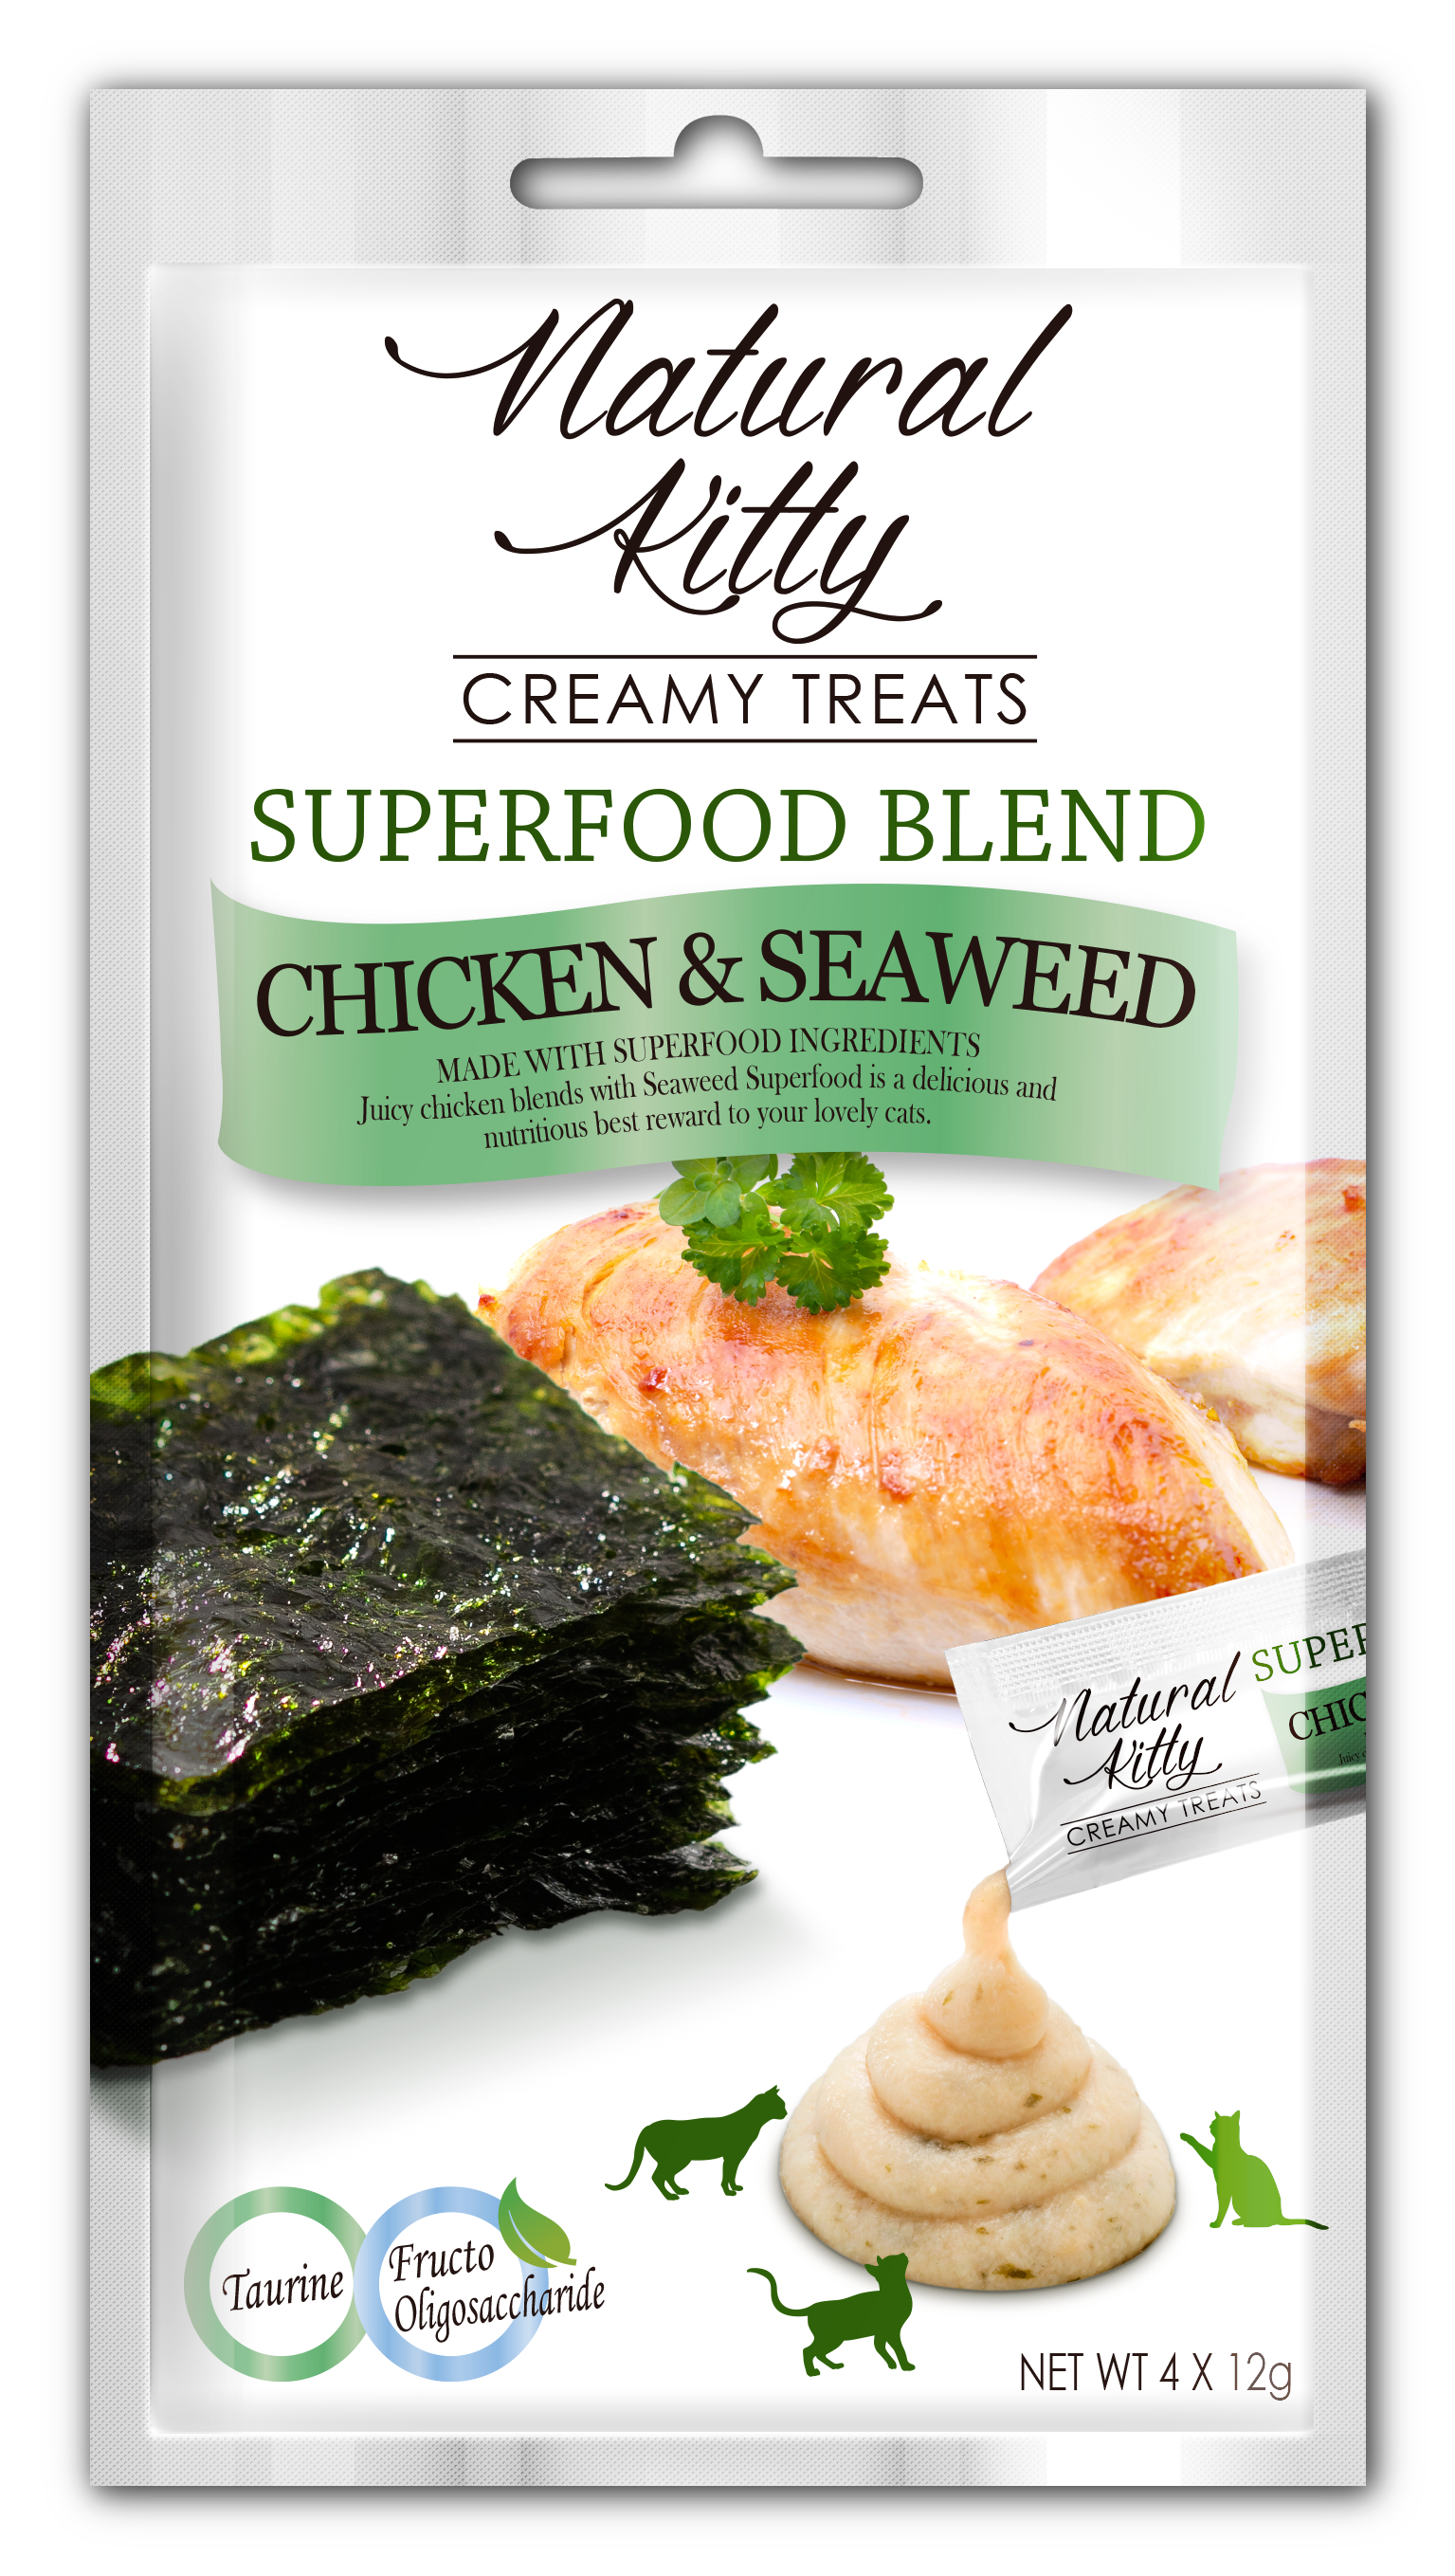 Creamy Treats Superfood Blend - Chicken and Seaweed (4 x 12g)